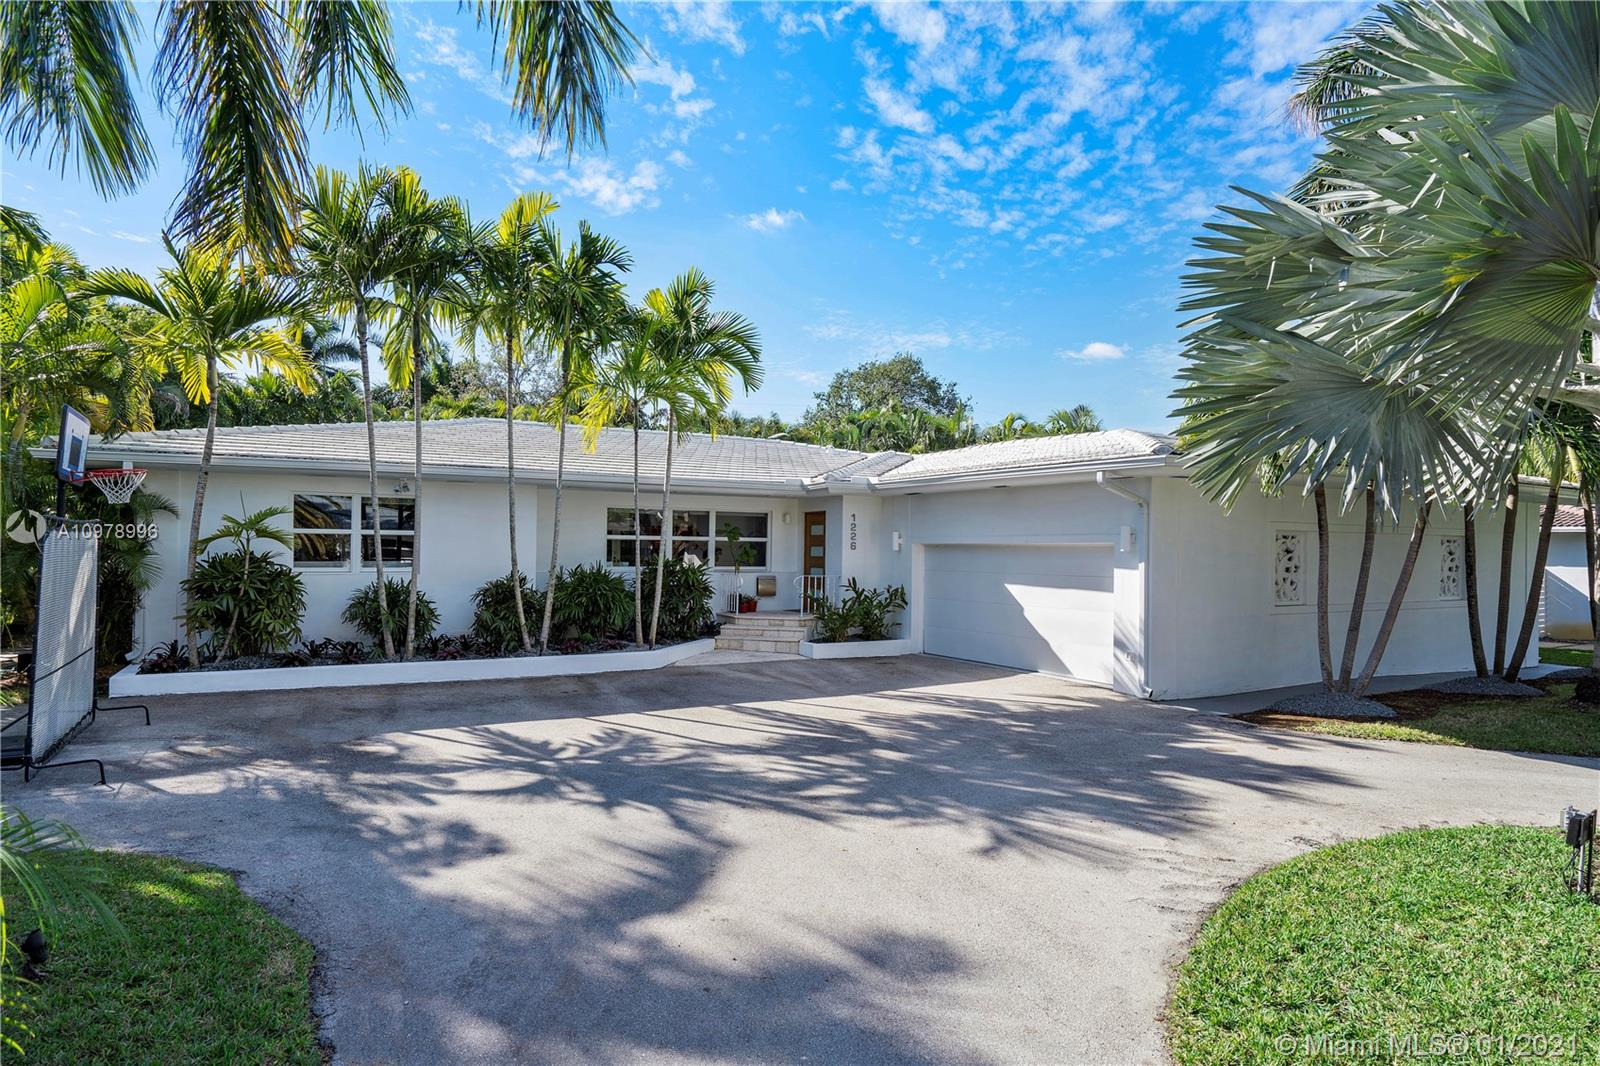 1226 NE 93rd St, Miami Shores, Florida 33138, 4 Bedrooms Bedrooms, ,3 BathroomsBathrooms,Residential,For Sale,1226 NE 93rd St,A10978996